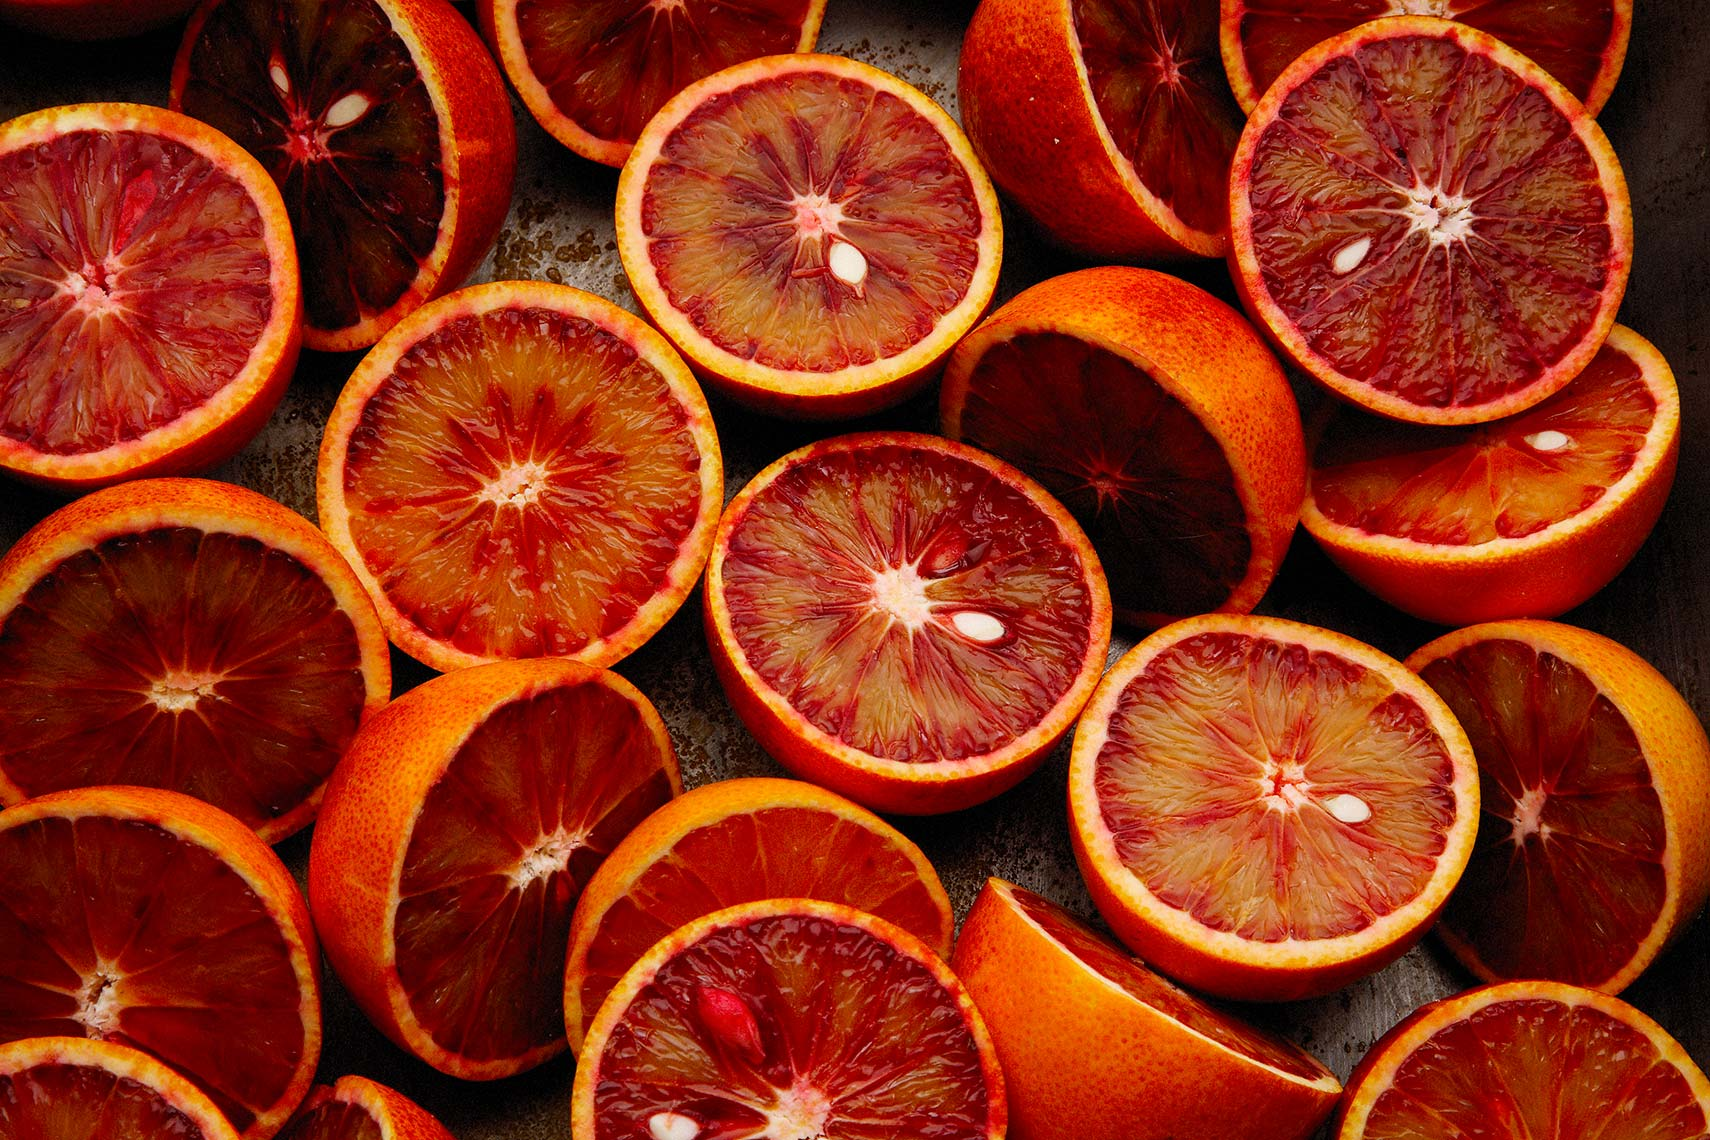 Blood oranges | Colin Campbell - Food Photographer